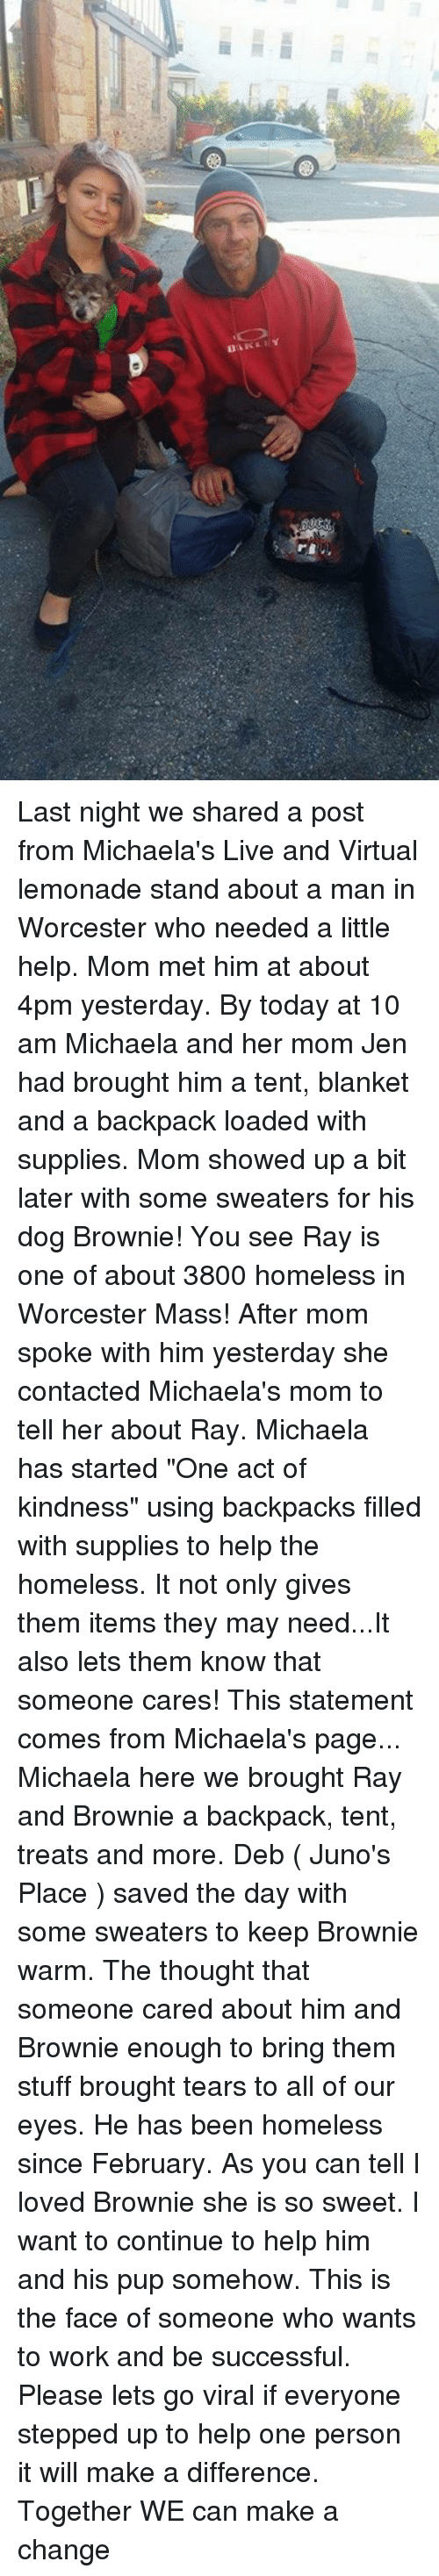 """Broughts: ■翻  Die"""" LY Last night we shared a post from Michaela's Live and Virtual lemonade stand about a man in Worcester who needed a little help. Mom met him at about 4pm yesterday. By today at 10 am Michaela and her mom Jen had brought him a tent, blanket and a backpack loaded with supplies. Mom showed up a bit later with some sweaters for his dog Brownie! You see Ray is one of about 3800 homeless in Worcester Mass! After mom spoke with him yesterday she contacted Michaela's mom to tell her about Ray. Michaela has started """"One act of kindness"""" using backpacks filled with supplies to help the homeless. It not only gives them items they may need...It also lets them know that someone cares!  This statement comes from Michaela's page... Michaela here we brought Ray and Brownie a backpack, tent, treats and more. Deb ( Juno's Place ) saved the day with some sweaters to keep Brownie warm. The thought that someone cared about him and Brownie enough to bring them stuff brought tears to all of our eyes. He has been homeless since February. As you can tell I loved Brownie she is so sweet. I want to continue to help him and his pup somehow. This is the face of someone who wants to work and be successful. Please lets go viral if everyone stepped up to help one person it will make a difference. Together WE can make a change"""